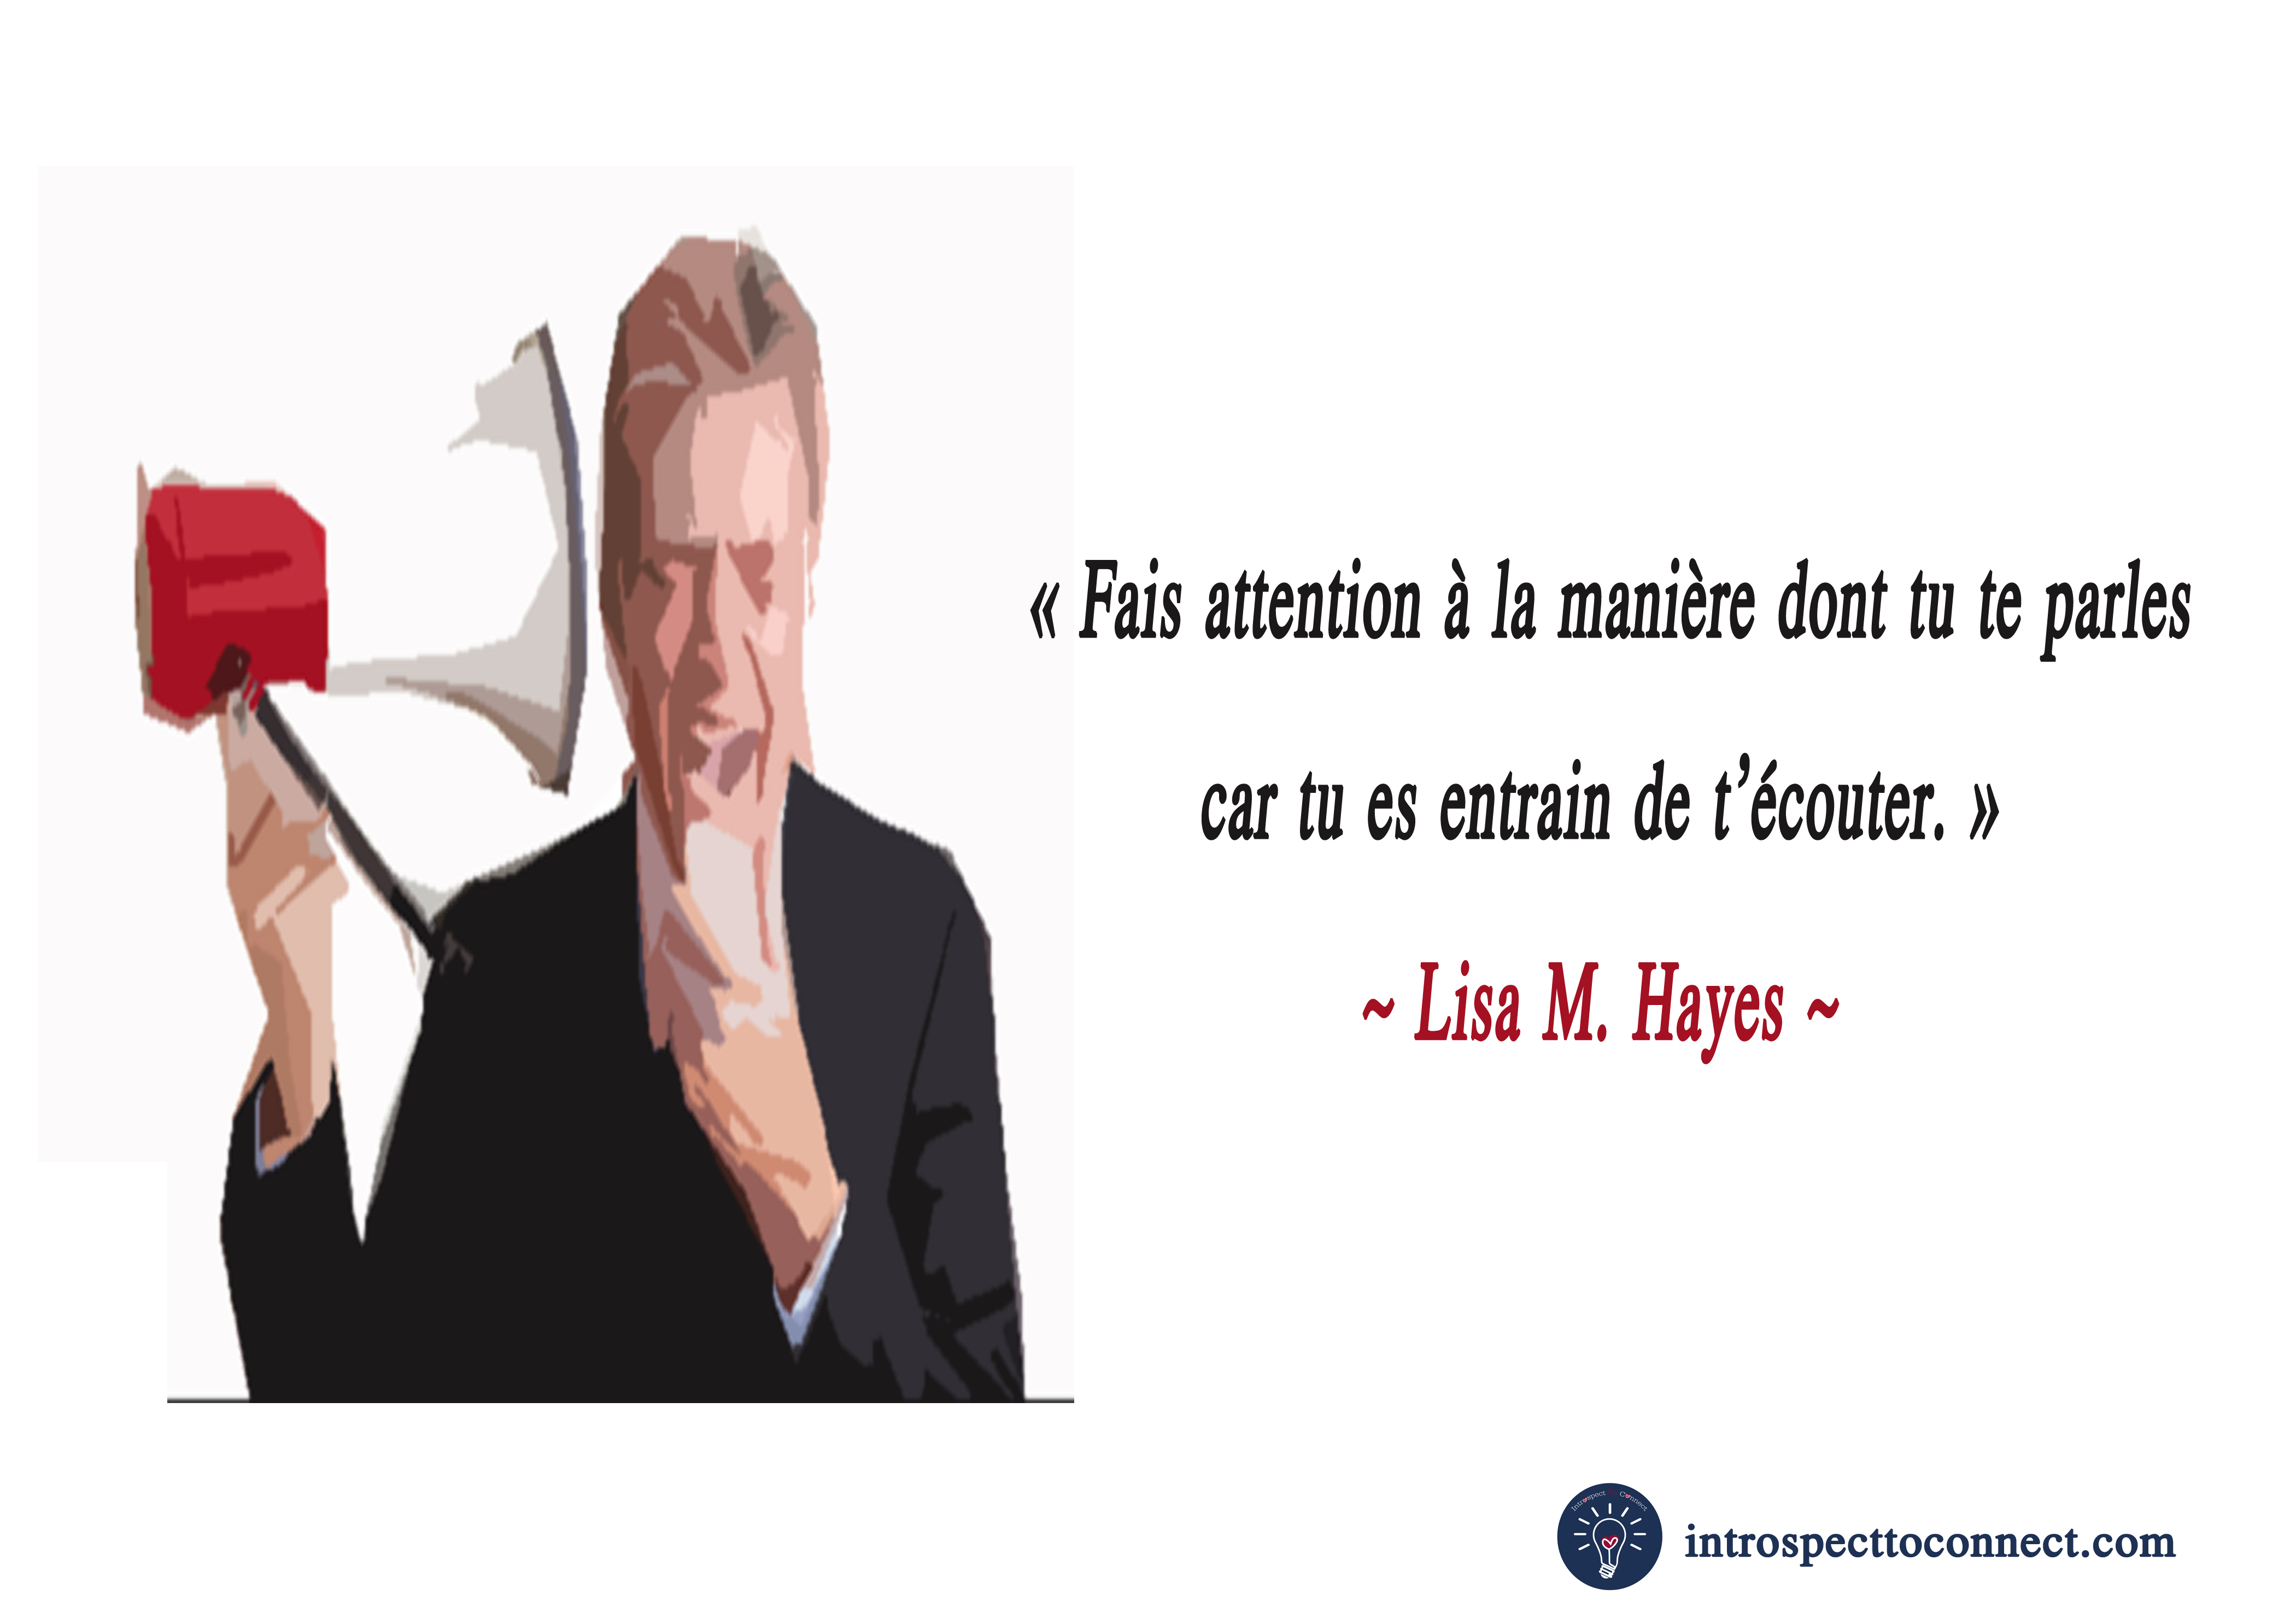 lisa-m-hayes-citation-copie